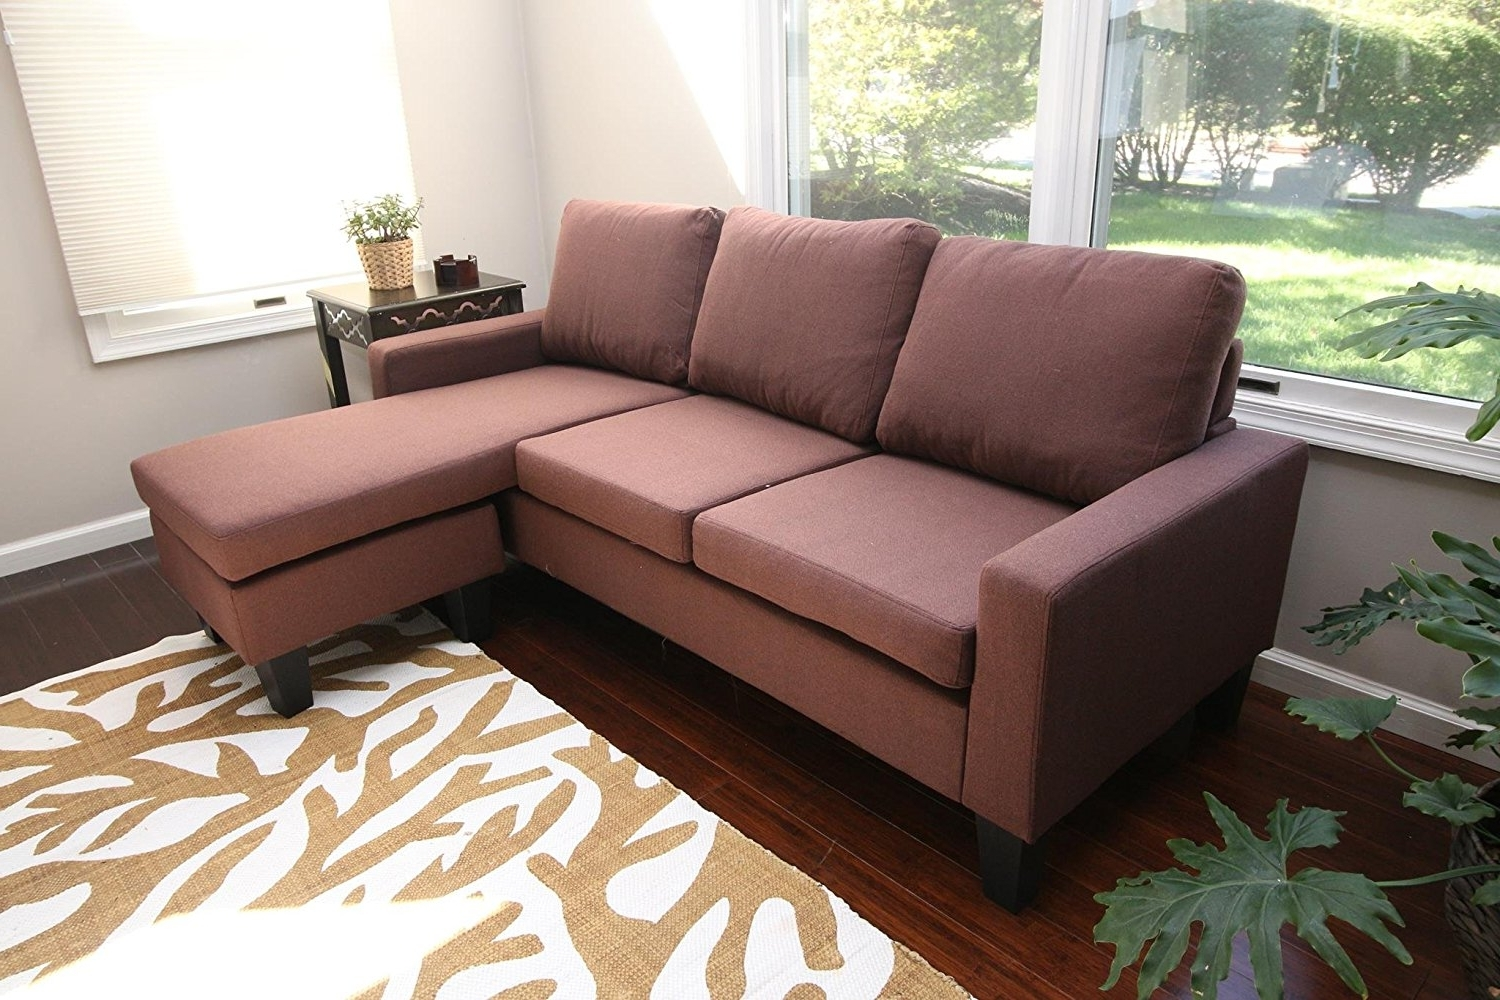 Widely Used 80x80 Sectional Sofas Regarding Furniture : Corner Couch 3d Model Zen Sectional Sofa Corner Couch (View 10 of 20)